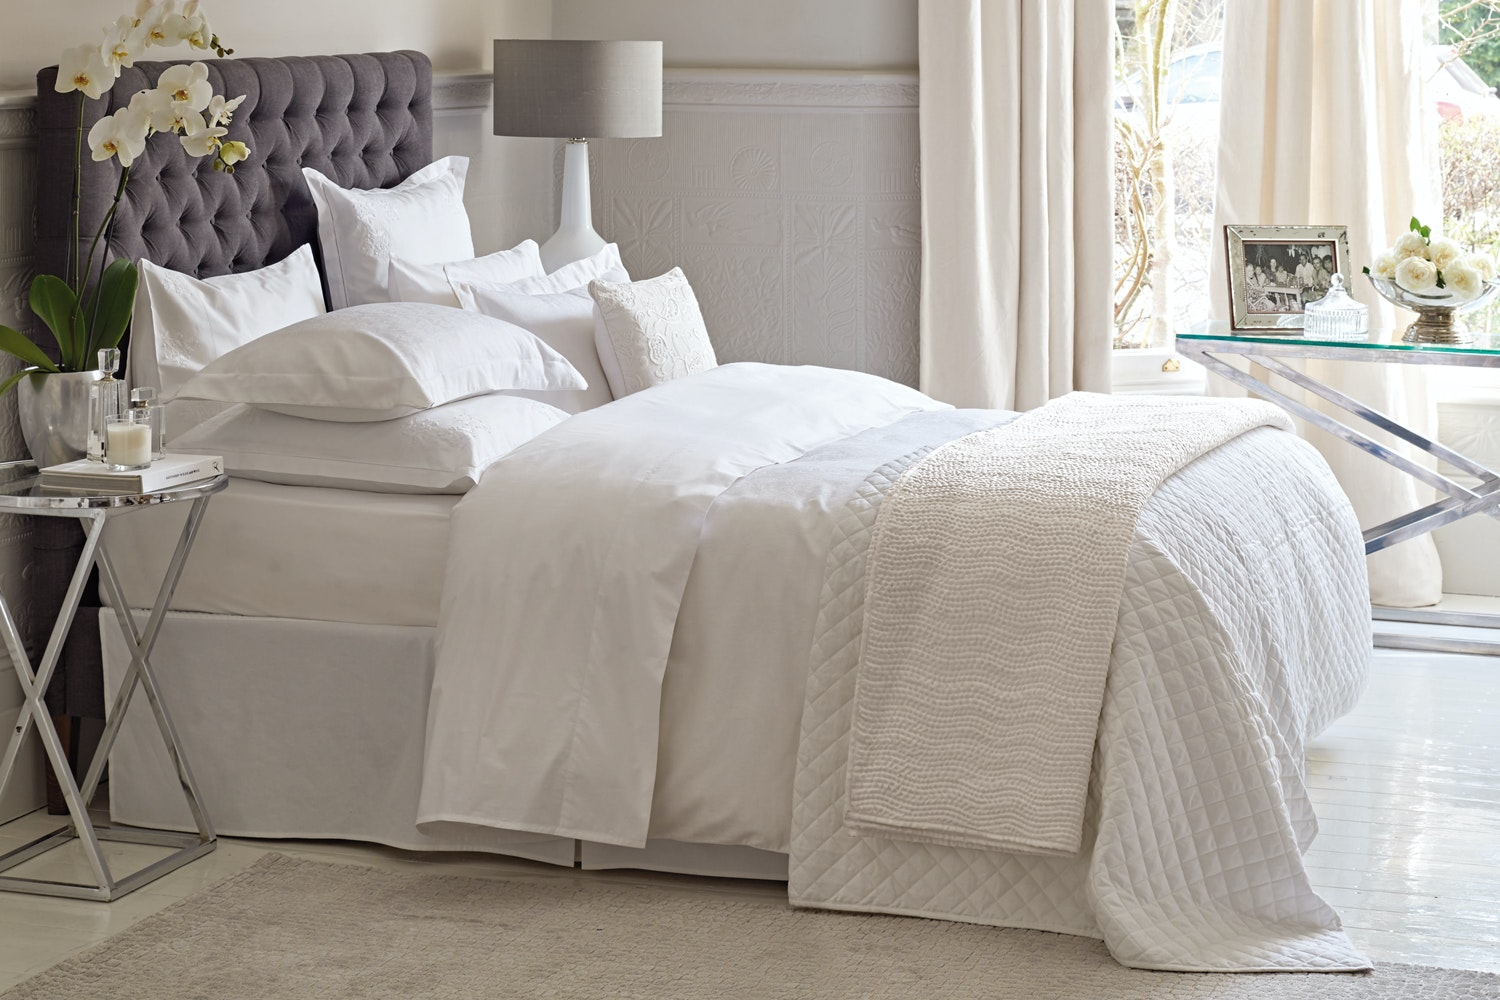 Vauville Duvet Cover | Super King